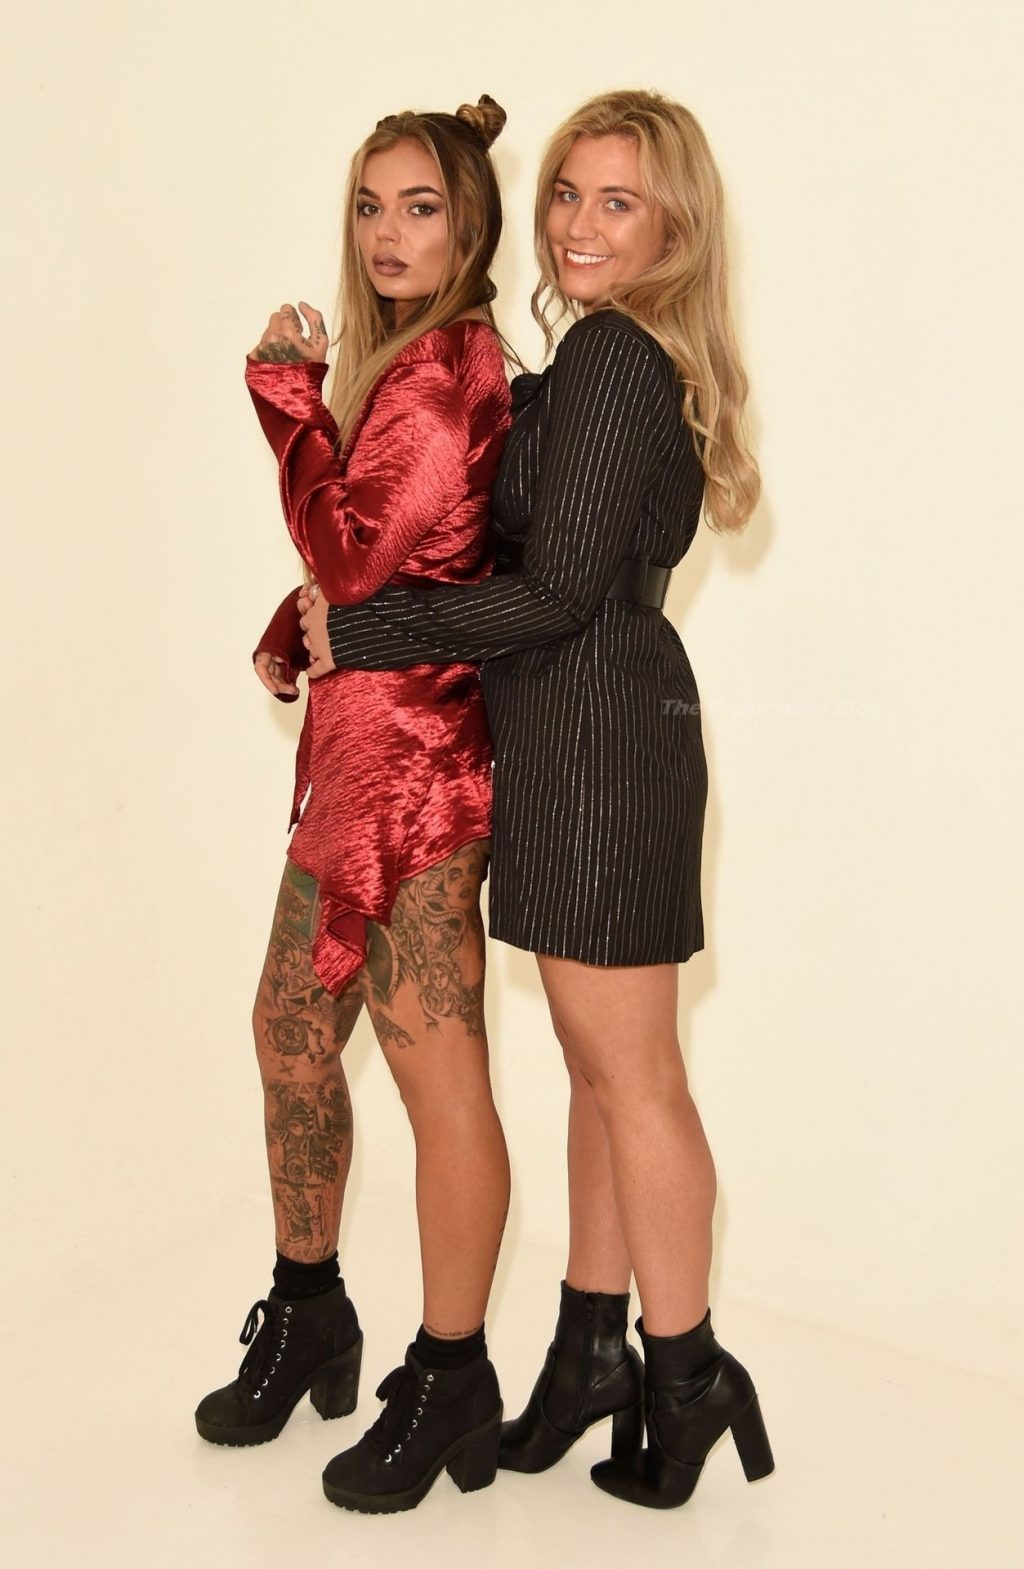 Sarah Hutchinson & Charlotte Taundry Enjoy a Sexy and Fun Photoshoot in Staffordshire (39 Photos)